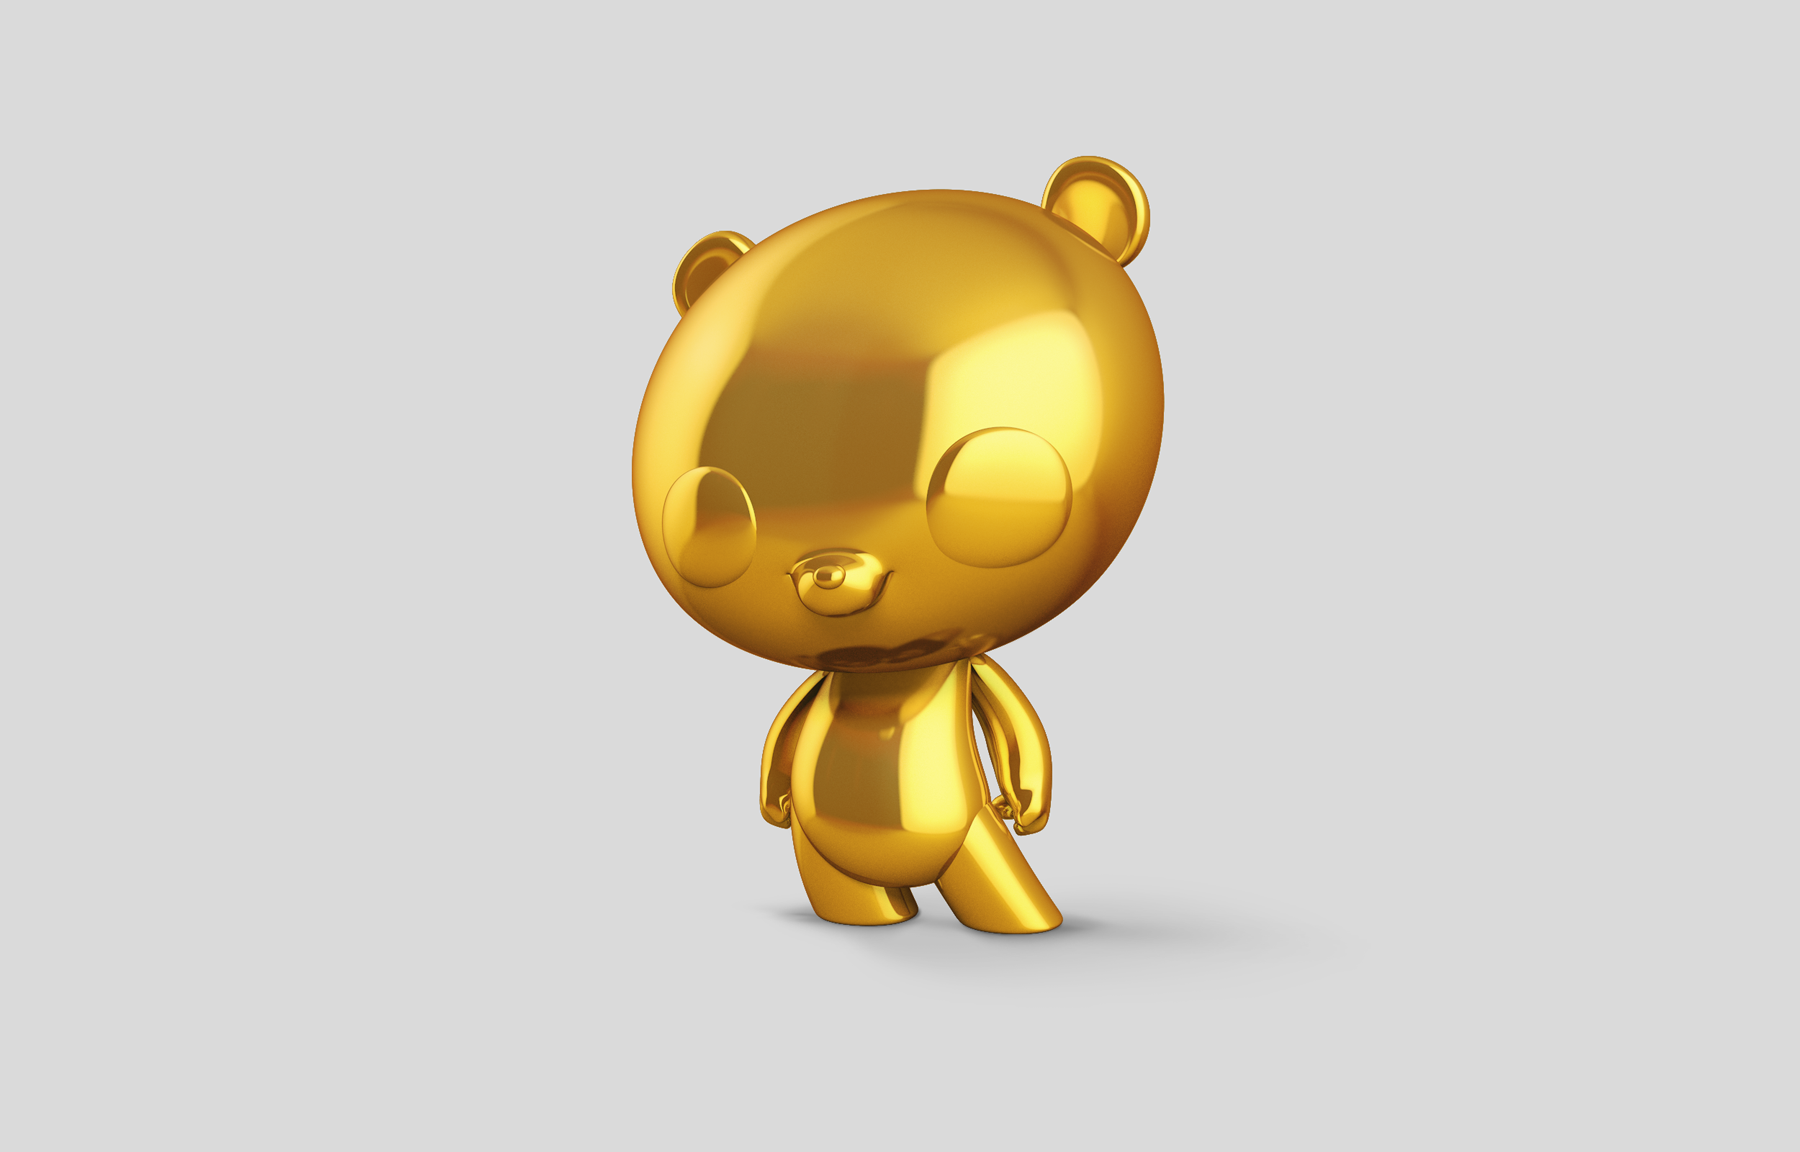 Bamboo Vinyl Toy Proyecto para Panda Security por The Woork Co